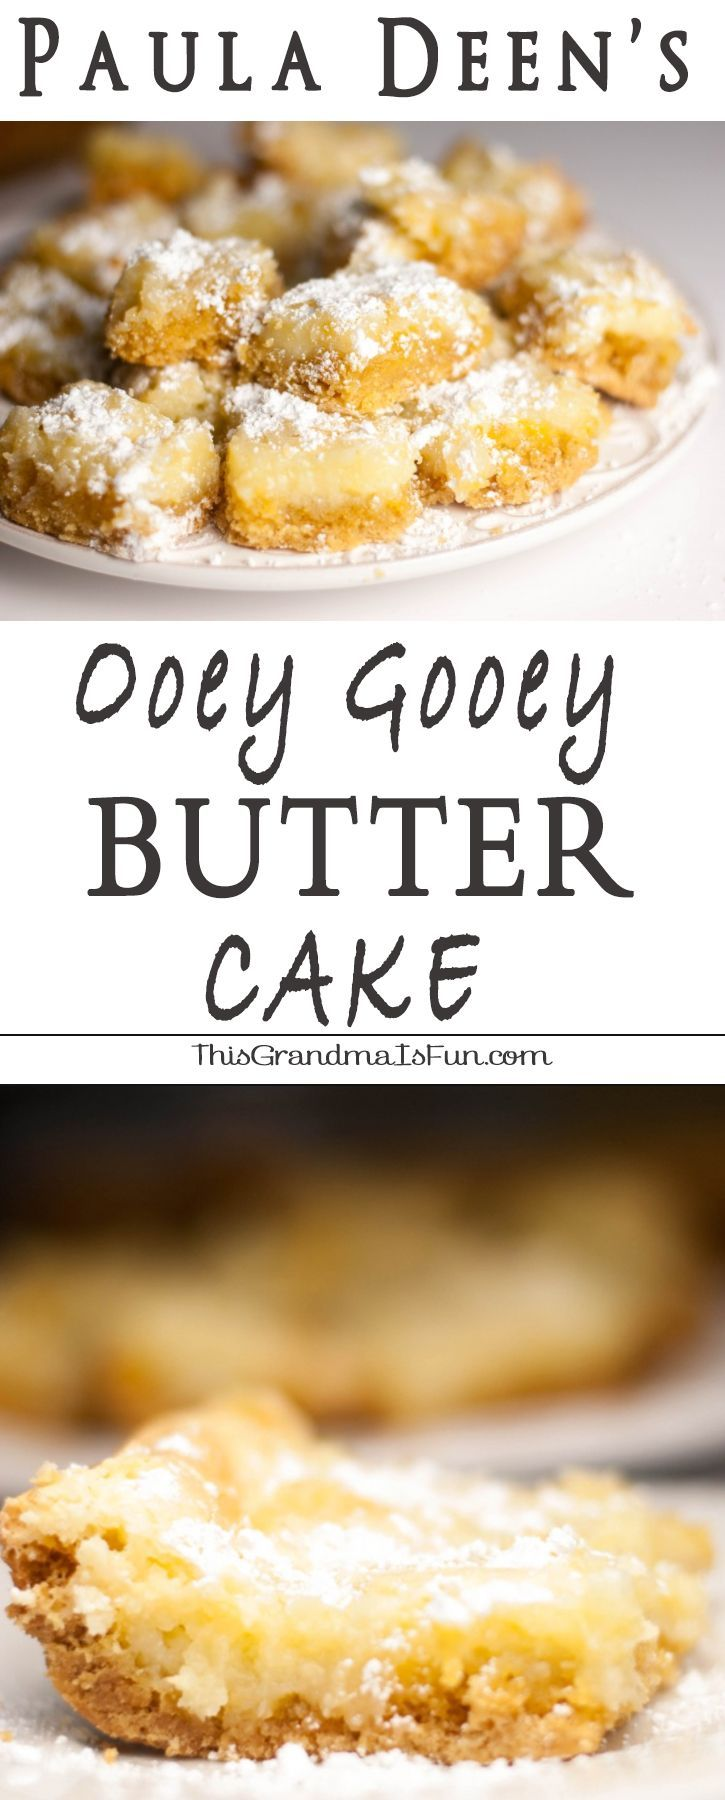 """Paula Deen's Ooeg Gooey Butter Cake When you hear the word """"butter"""" who do you think of?  Paula Deen?  Me too.  I have never made a single recipe from Paula Deen (sorry Paula!  I still like ya'll!) but I have seen this Paula Deen's Ooey Gooey Butter Cake pinned so many times that I couldn't resist.  I have also seen this pinned as """"The Original Neiman Marcus Bars"""" and """"Texas Gold Bars"""".  Whatever you call them, they ARE ooey, they ARE gooey and they definitely have a rich, buttery flavor eve"""